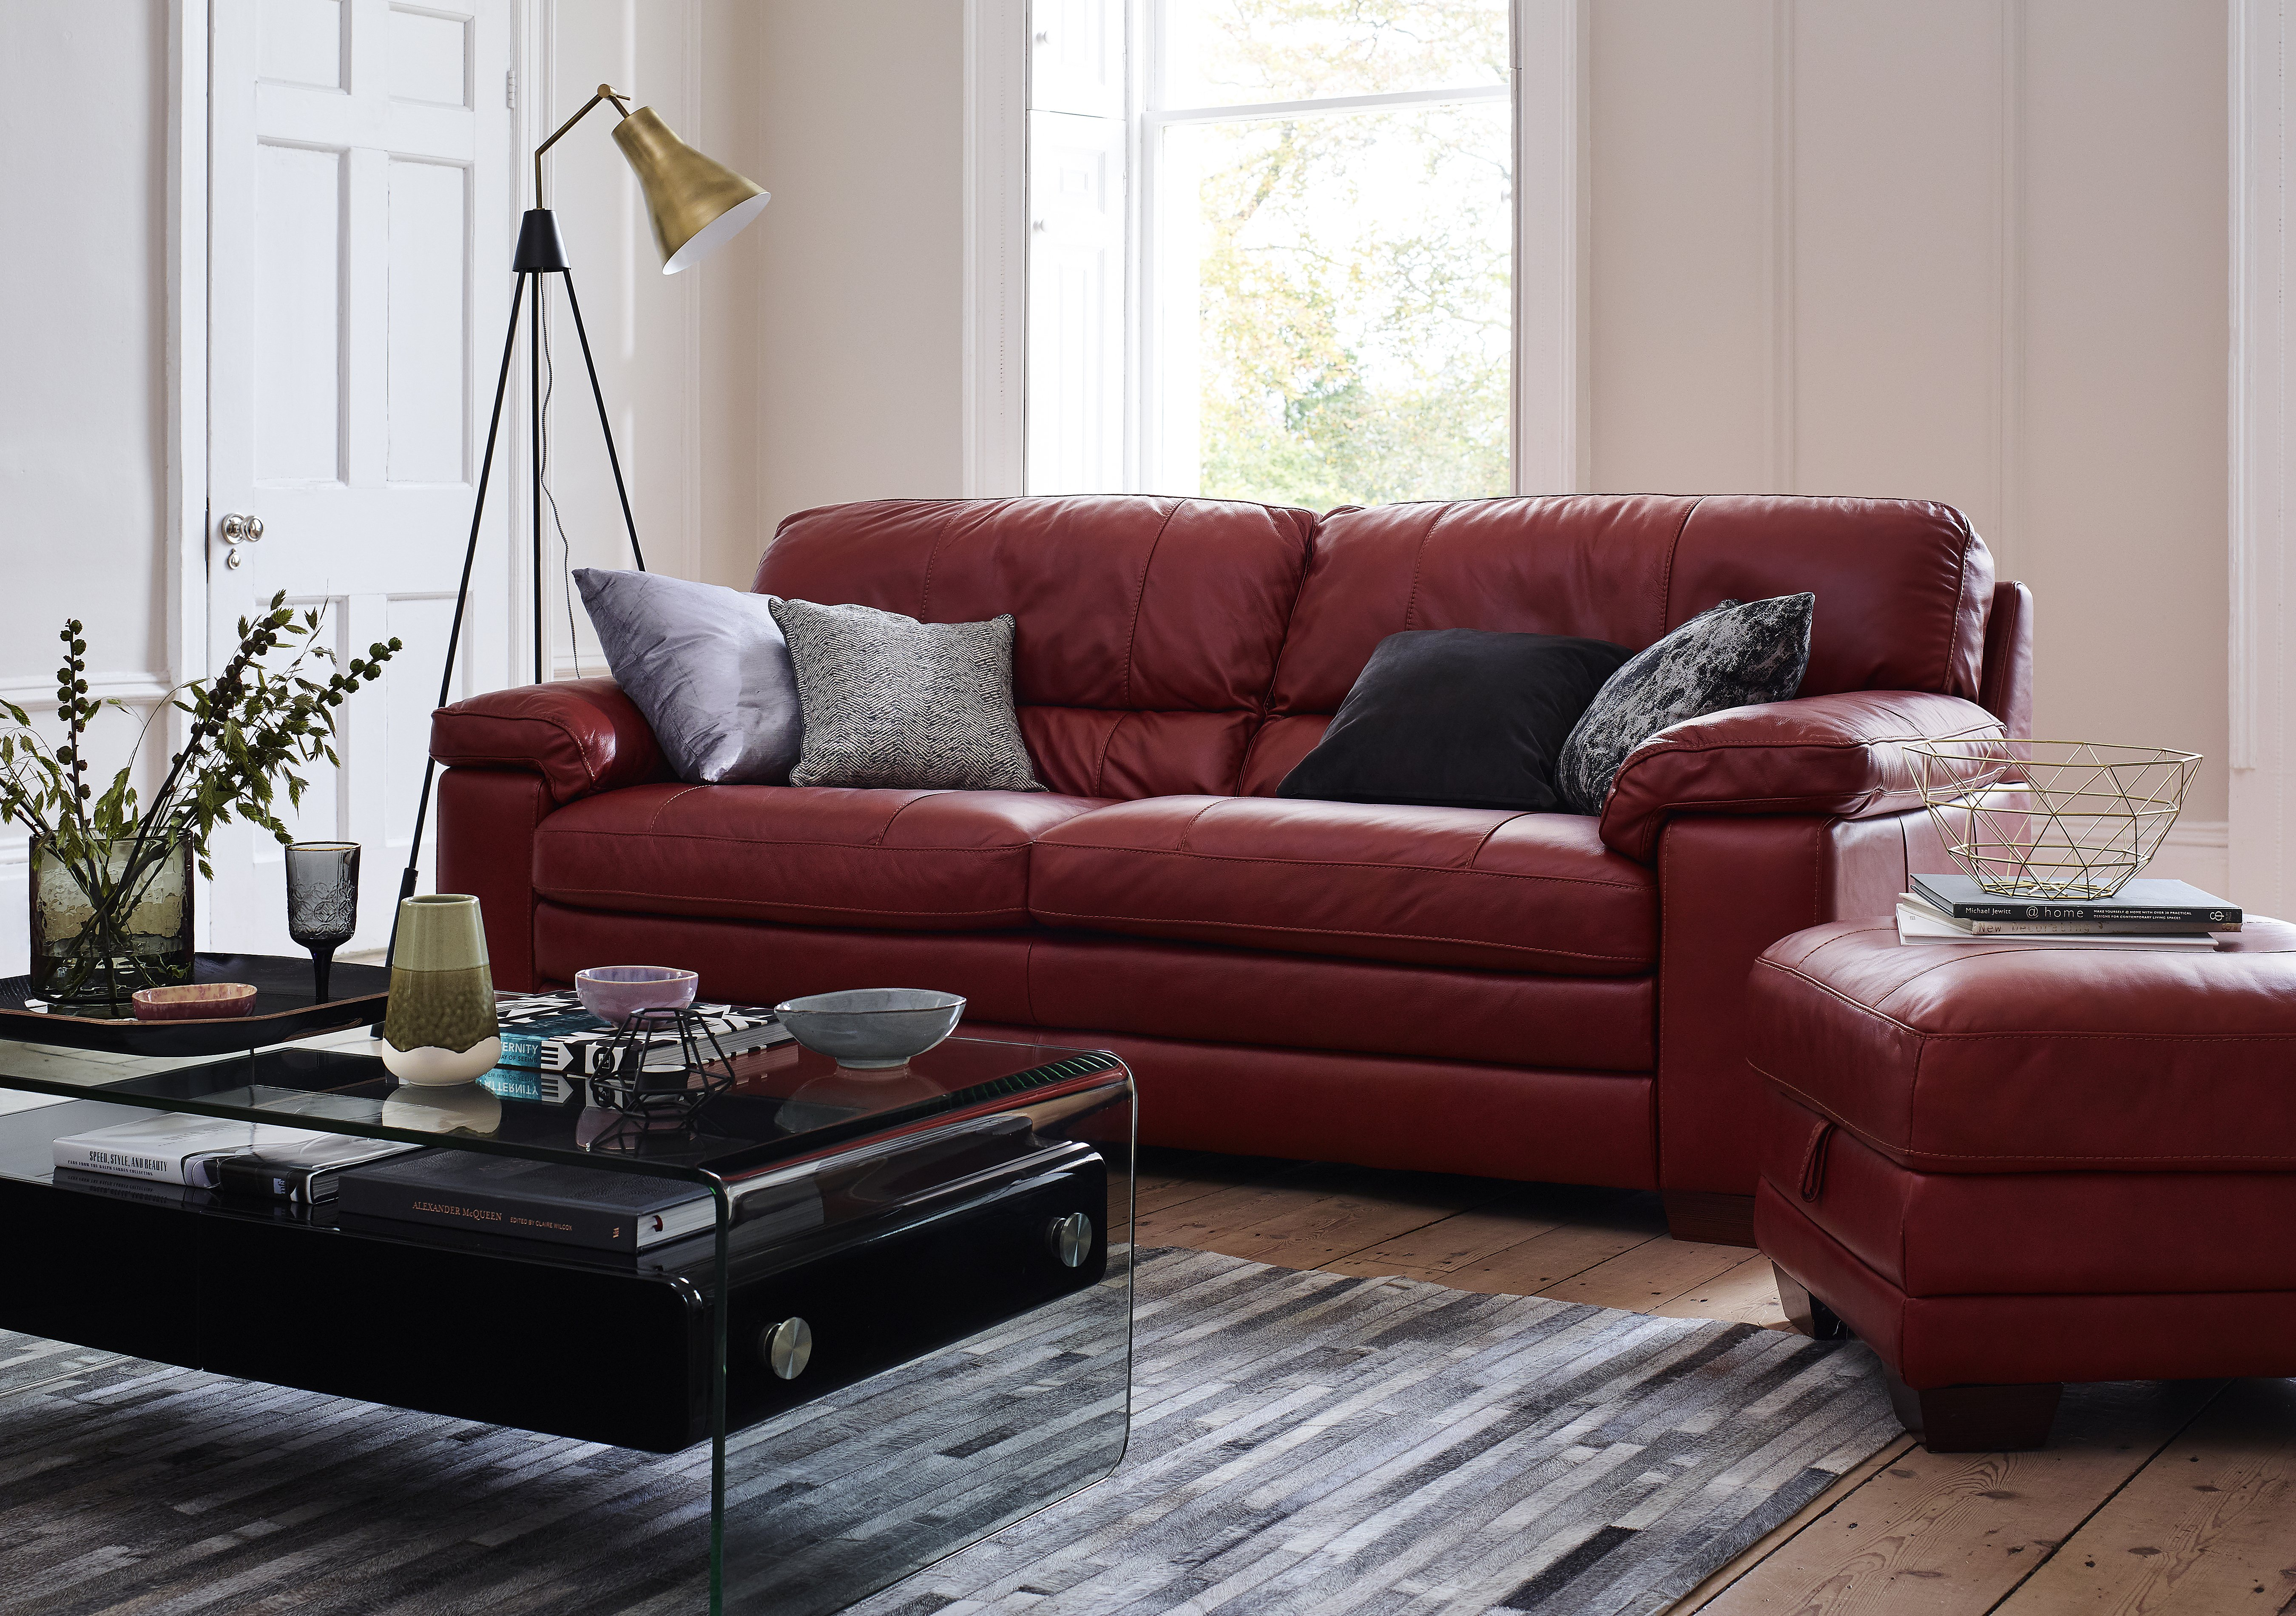 Carolina 3 Seater Leather Sofa World Of Leather Furniture Village ~ Pure Leather Sofa Price